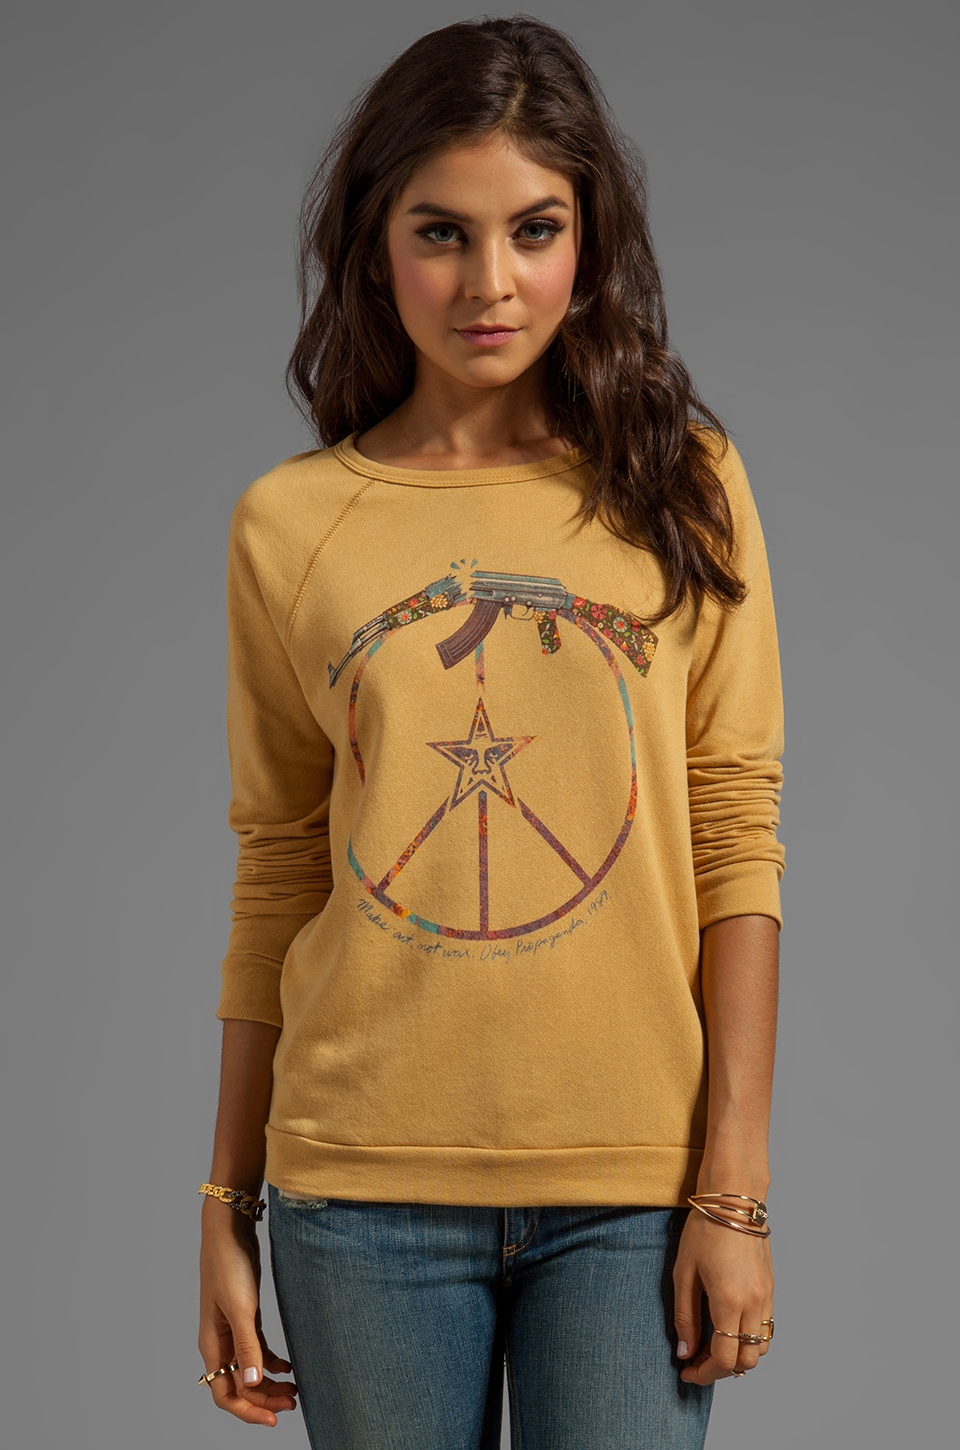 Obey Broken Gun Sweatshirt in Amber Gold